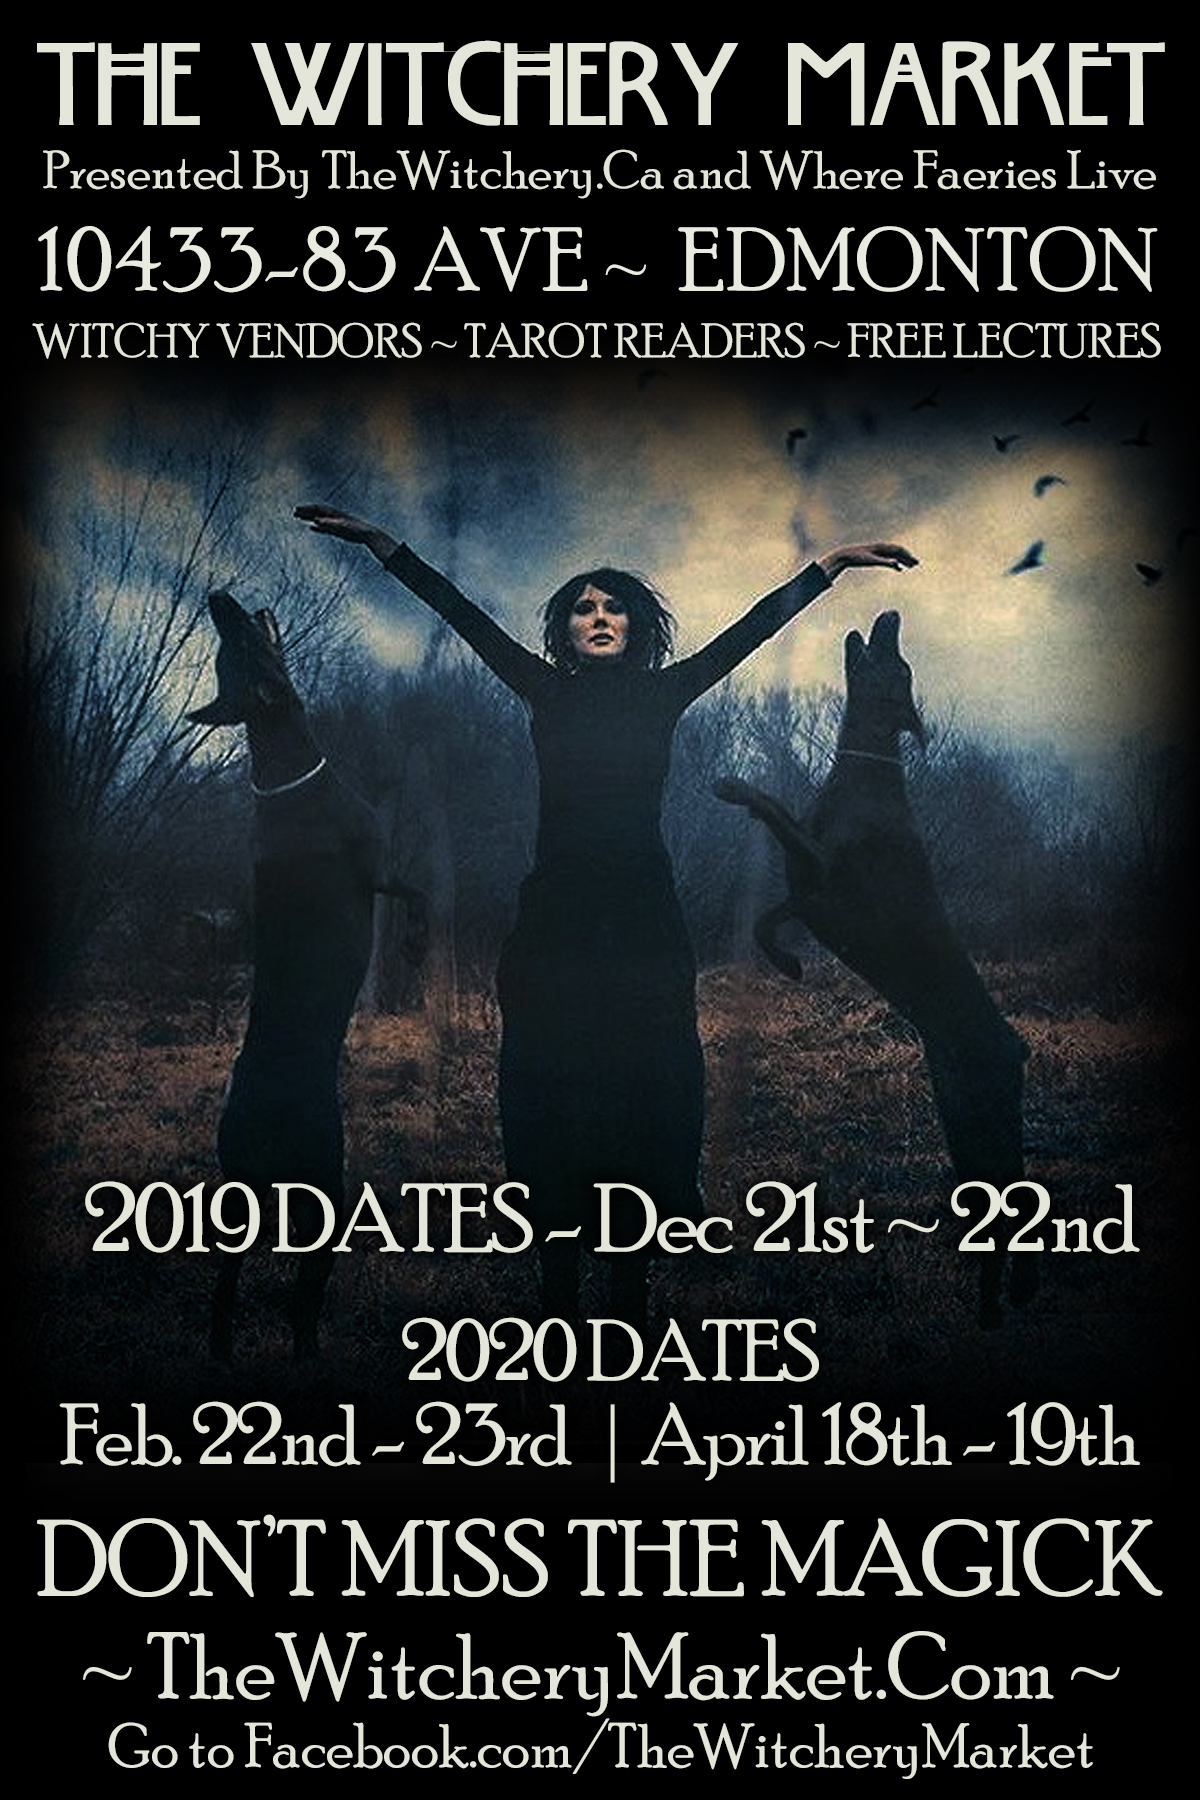 The Witchery Market